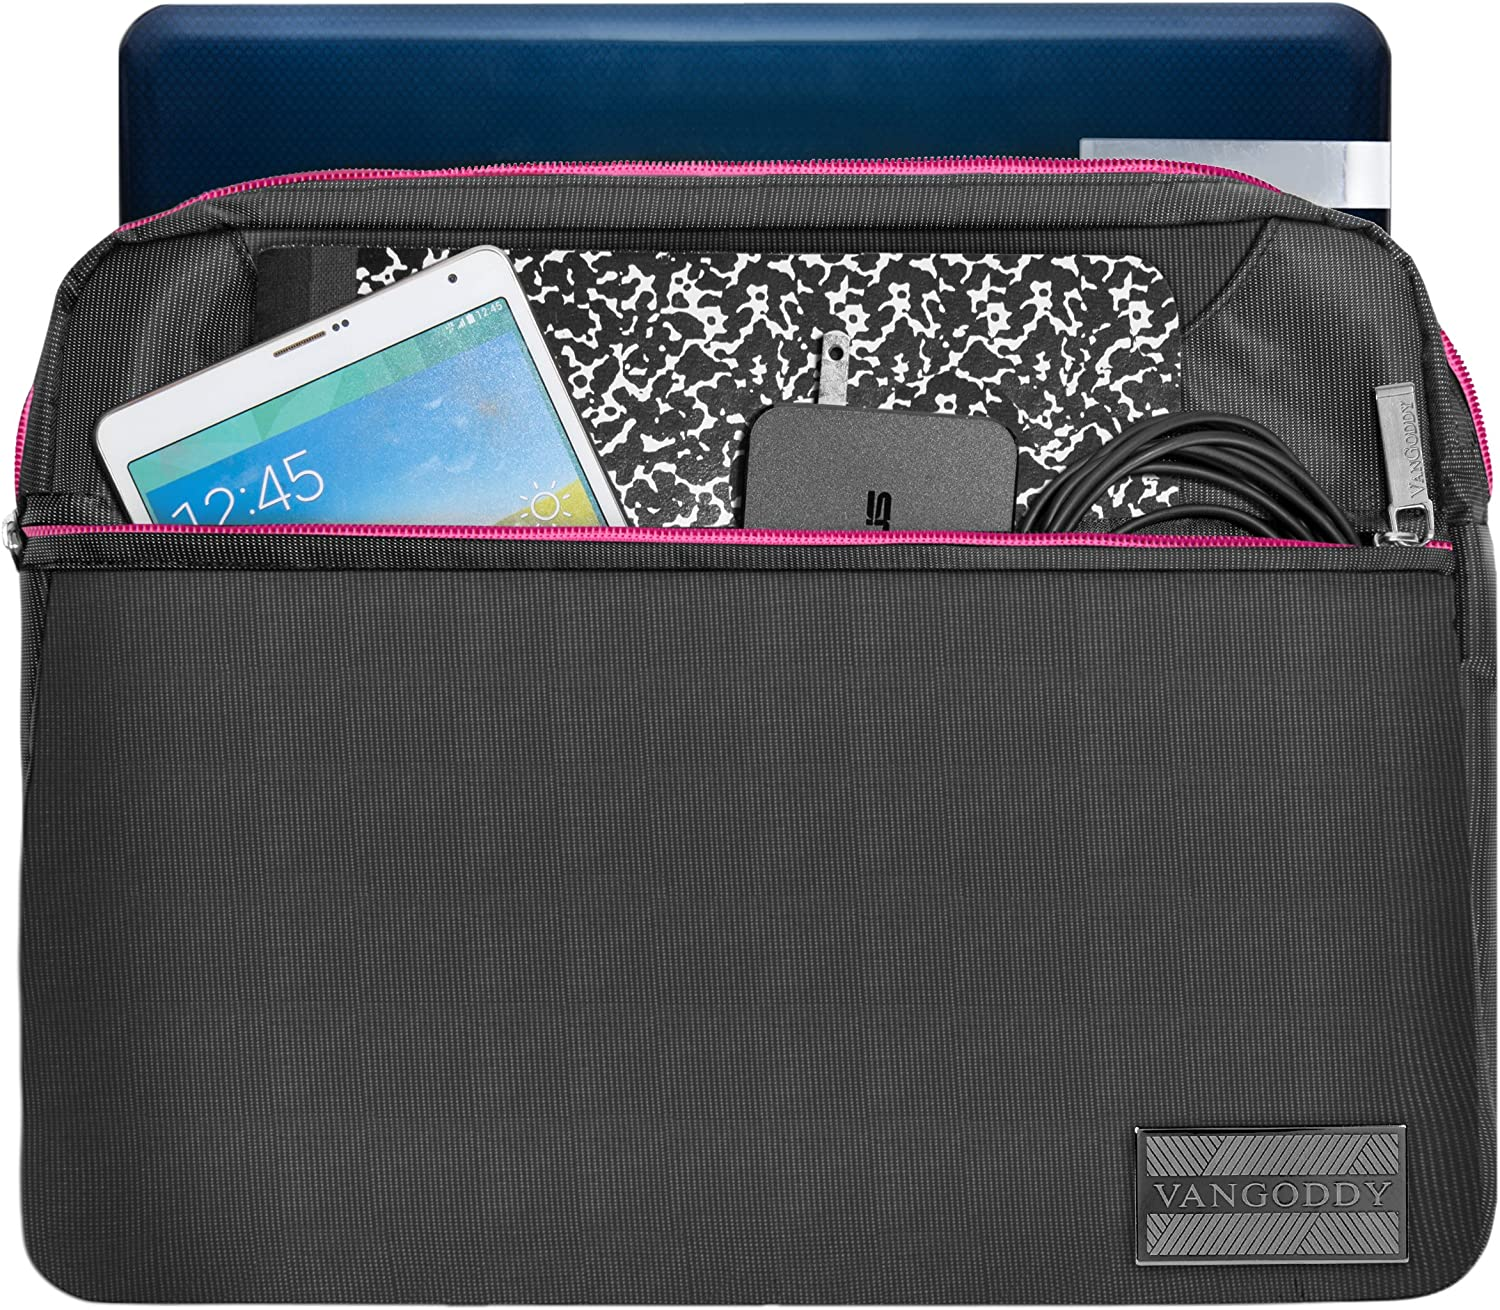 PS42 14 Slim Pink Trim 13.3 inch Laptop Messenger Bag with HDMI Cable for MSI Shadow GS30 13.3